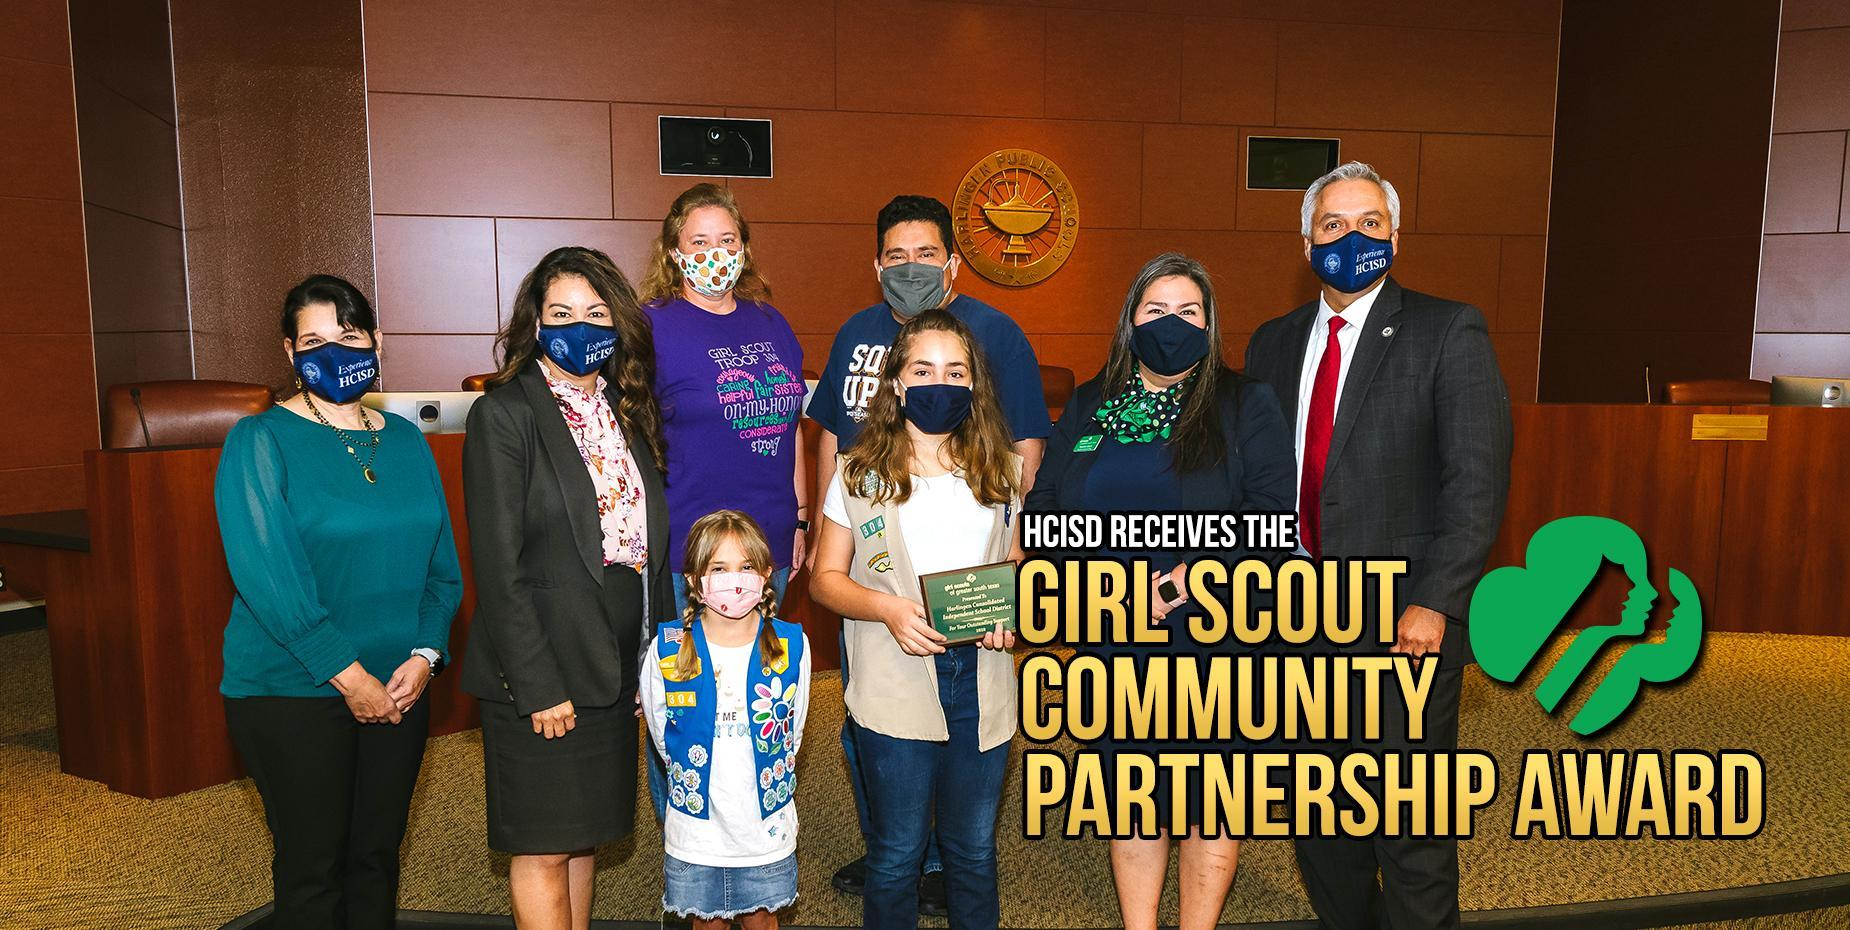 HCISD receives the Girl Scout Community Partnership Award